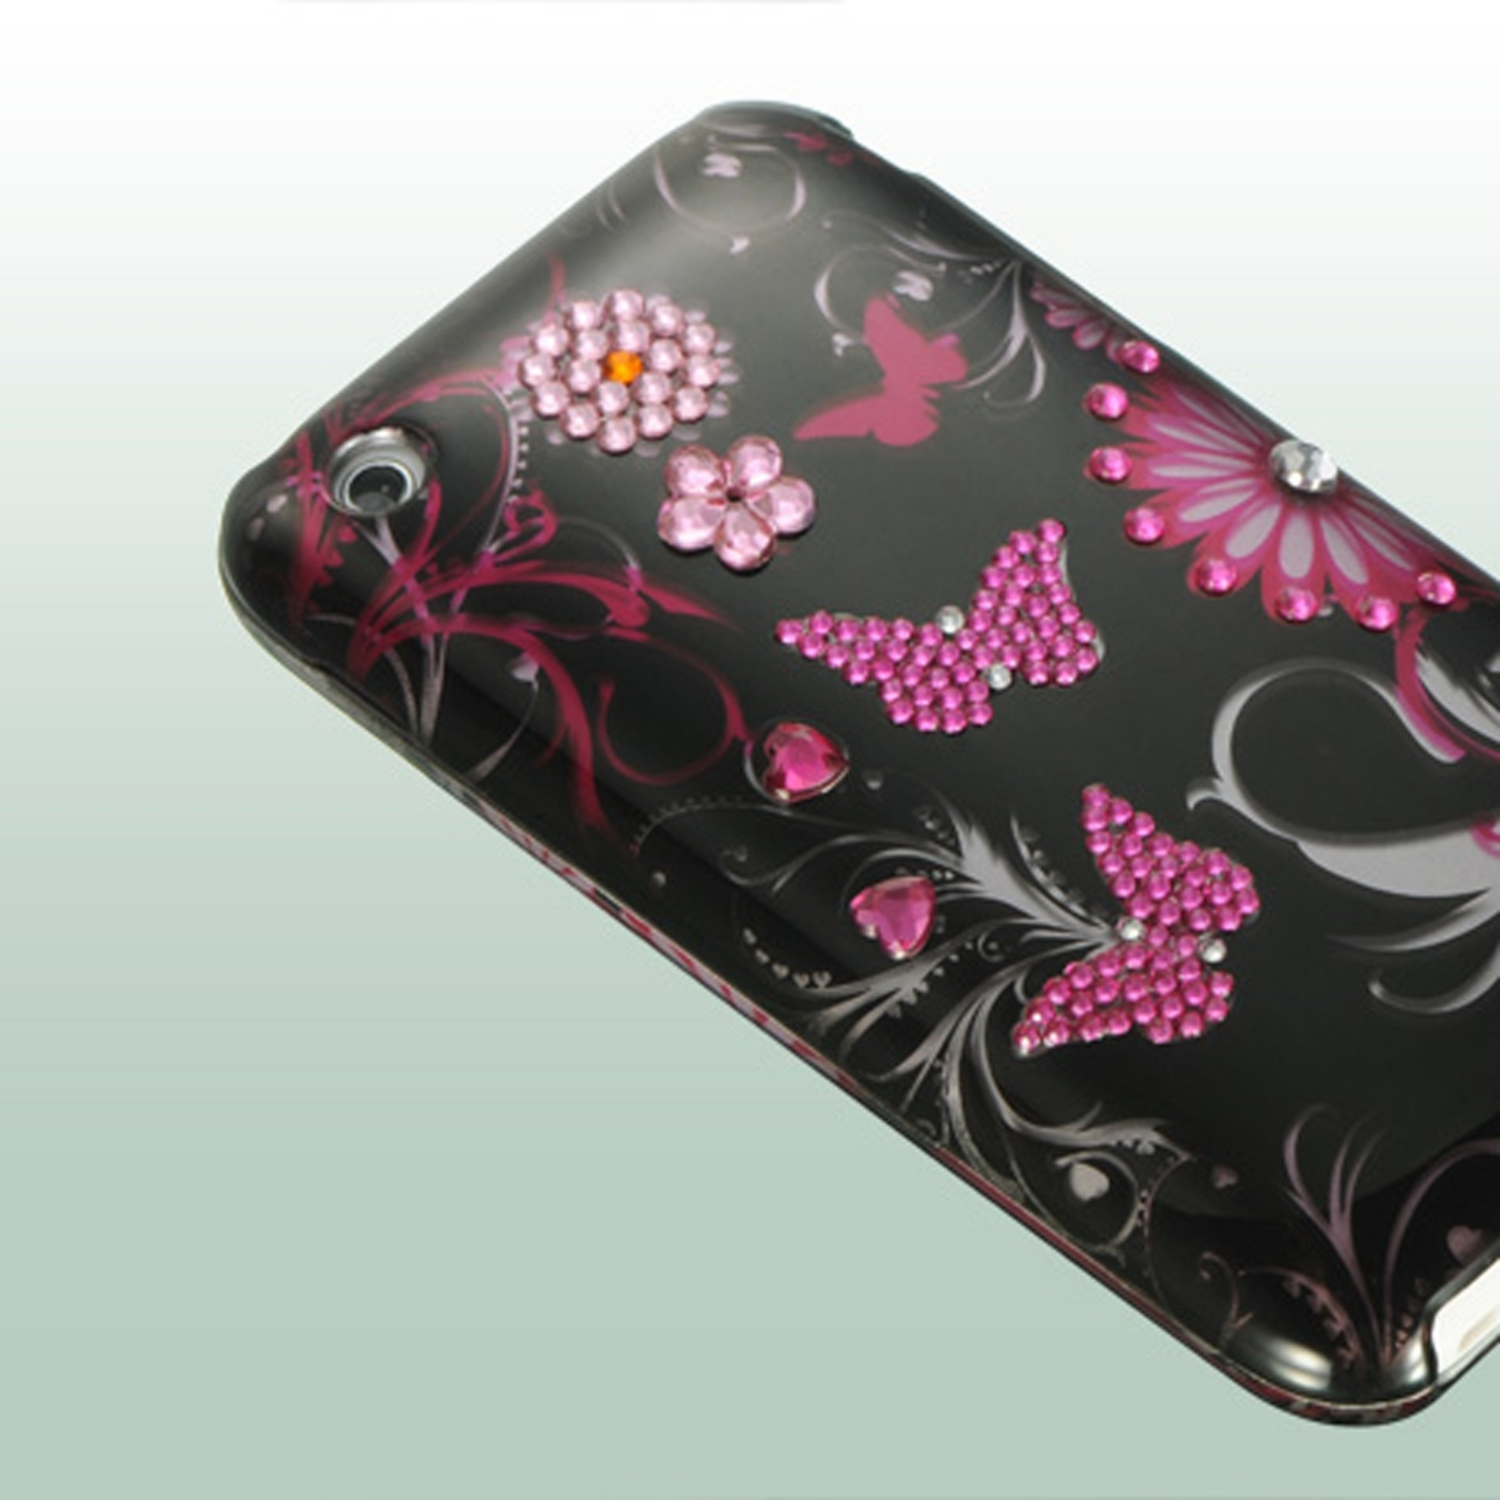 Insten Spot Diamond Bling Hard Back Cover Case For Apple iPhone 3G / 3GS - Pink Butterfly